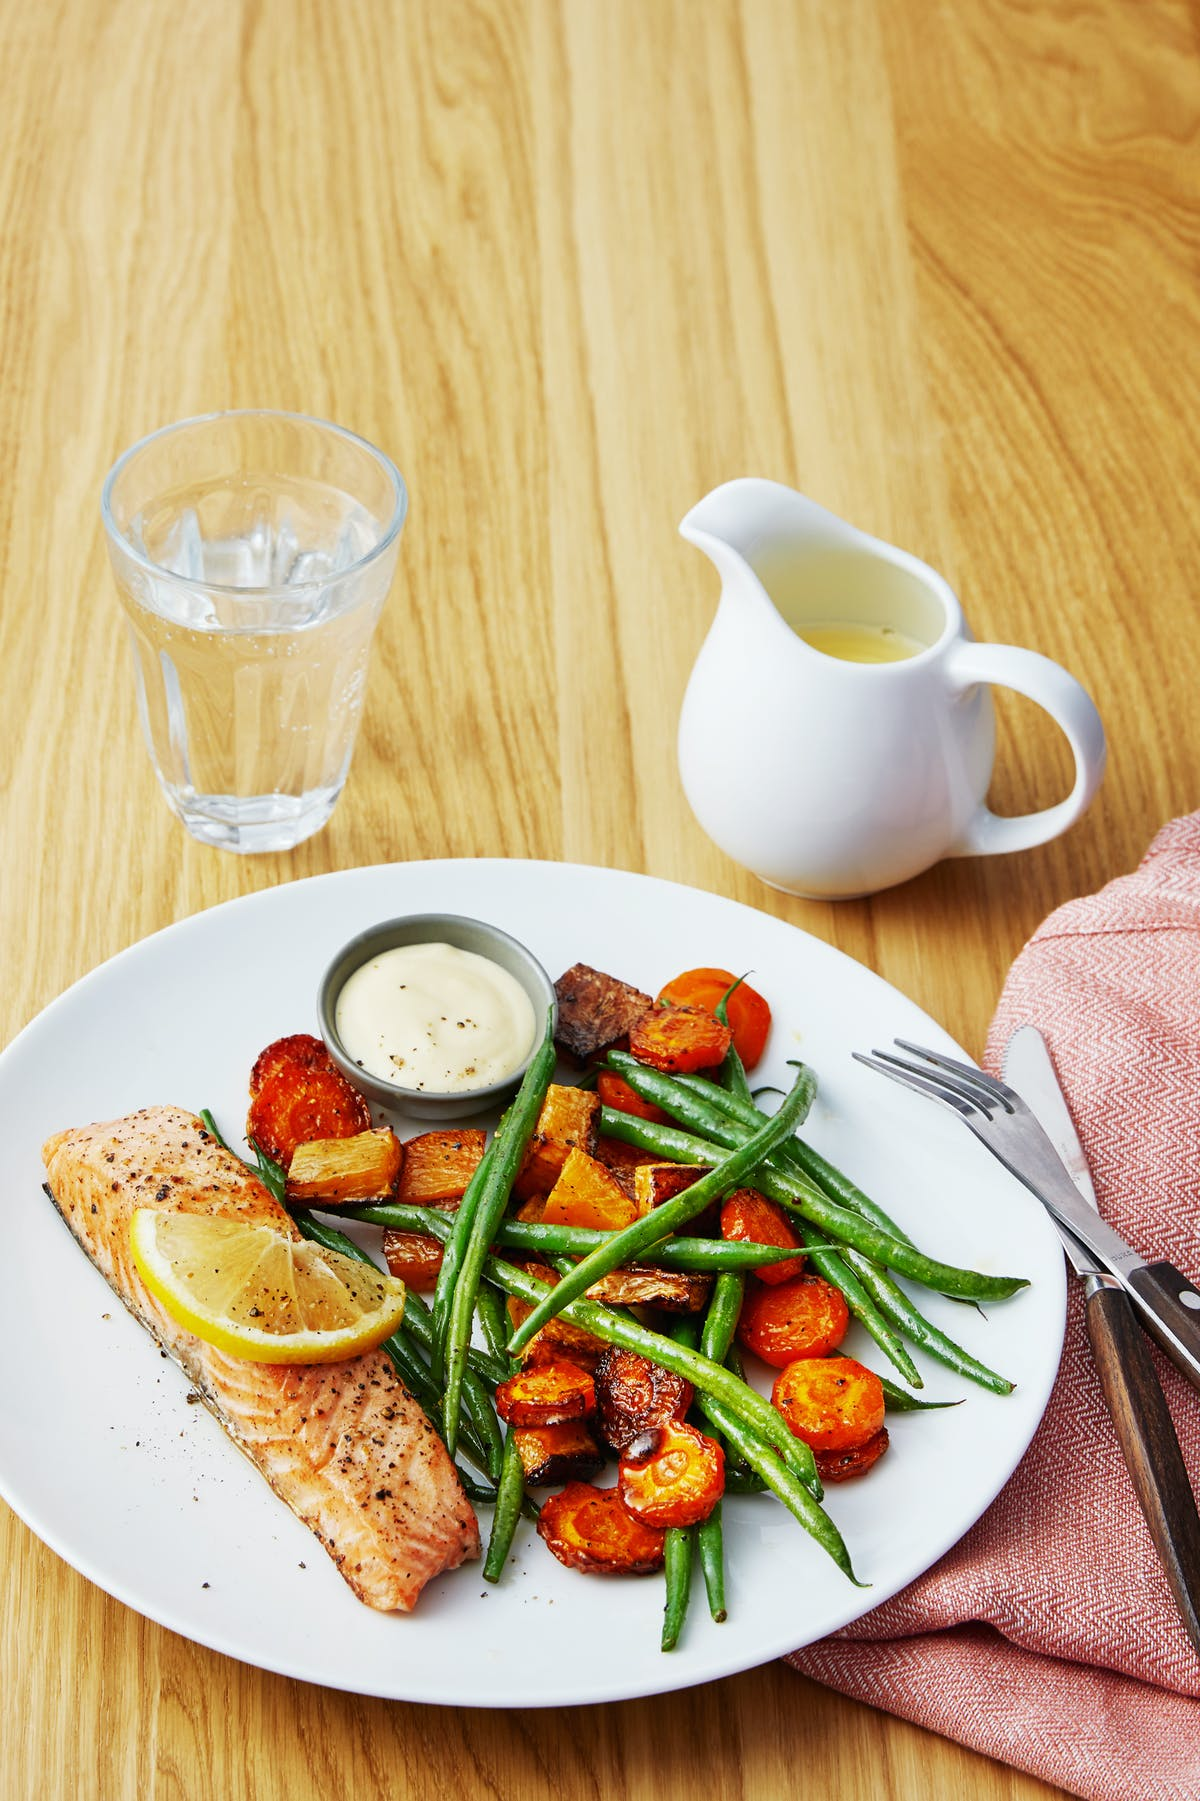 Oven-baked salmon with root vegetables, green beans and hollandaise